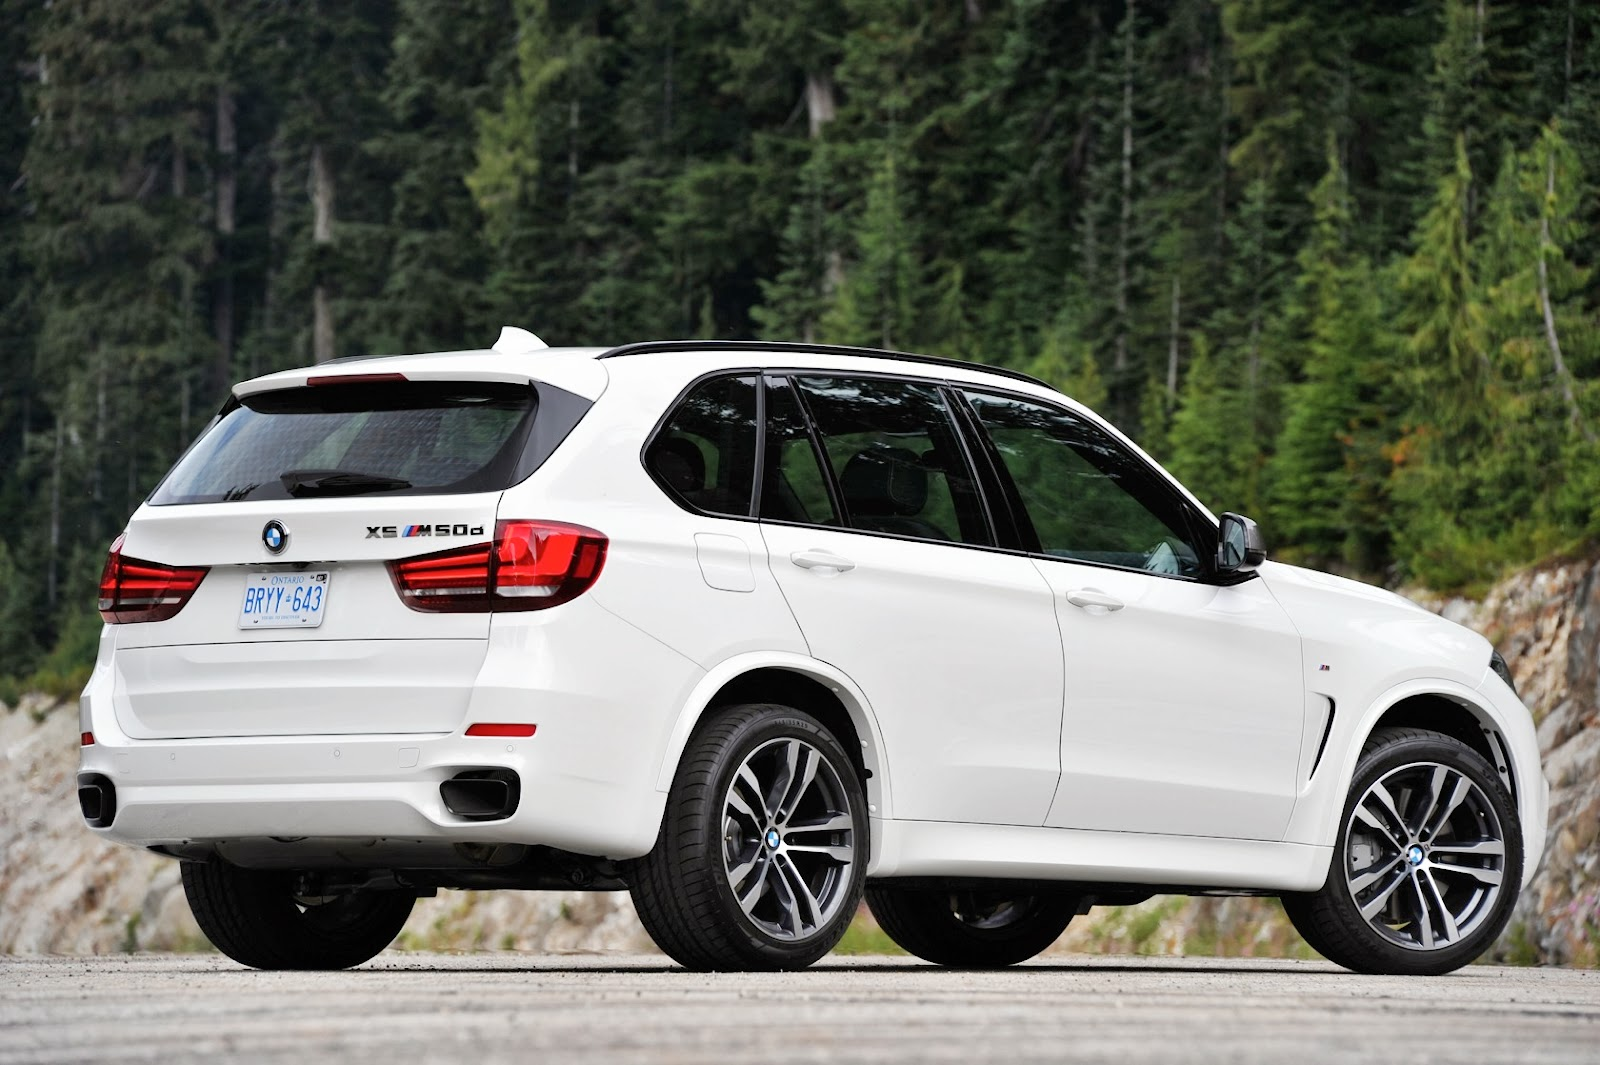 BMW X5 M50d: Intriguing and Loaded with Torque - TickTickVroom - Car